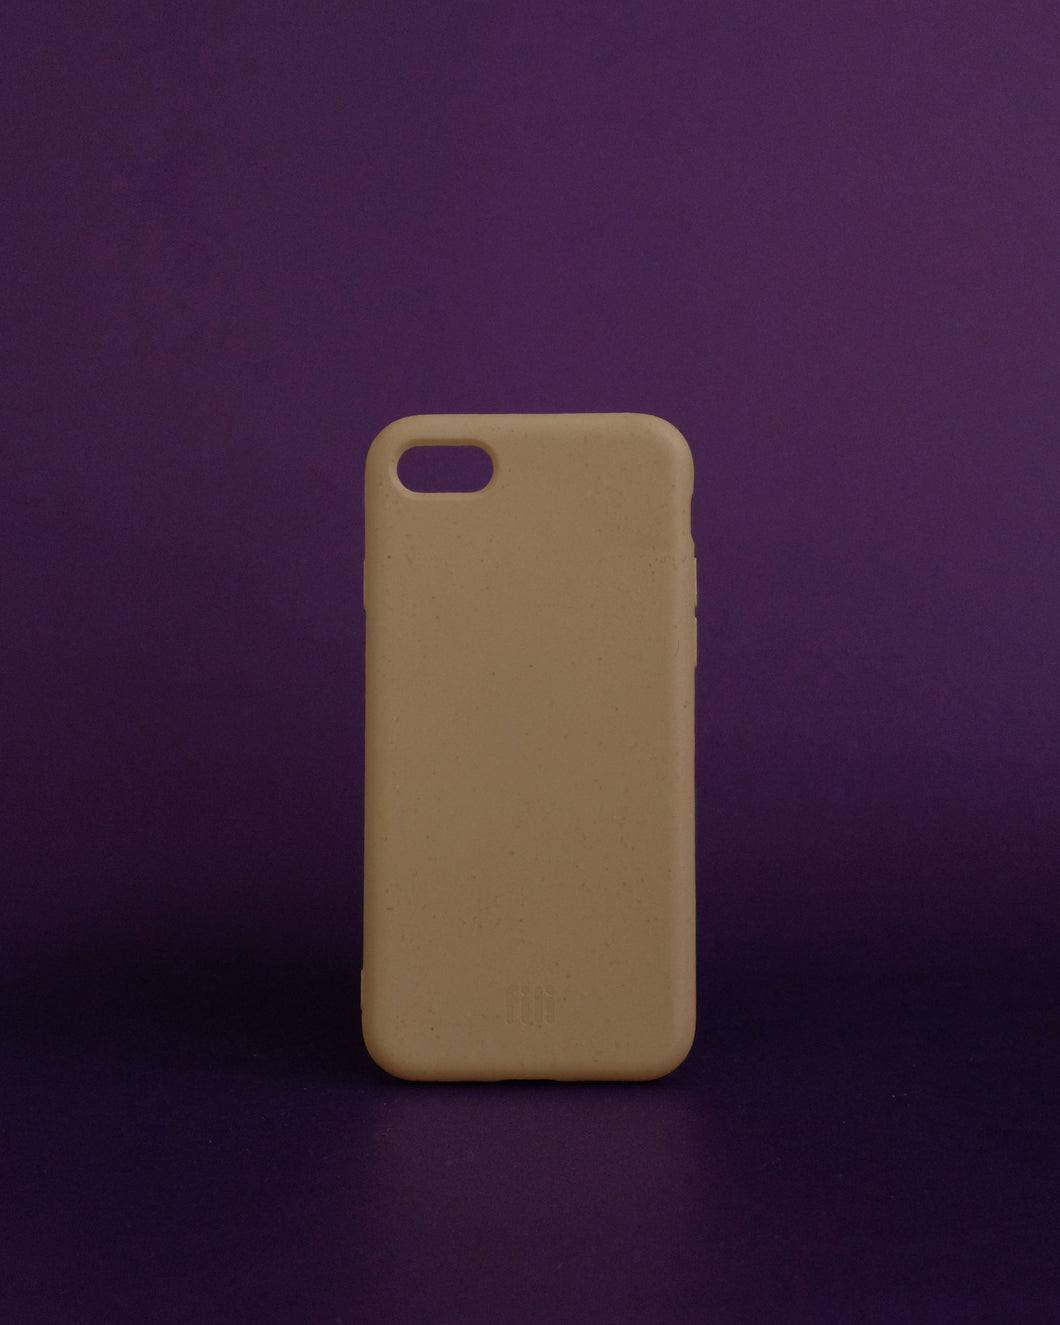 Fili Case Plant-based Smooth iPhone Case - Nude - Loop.